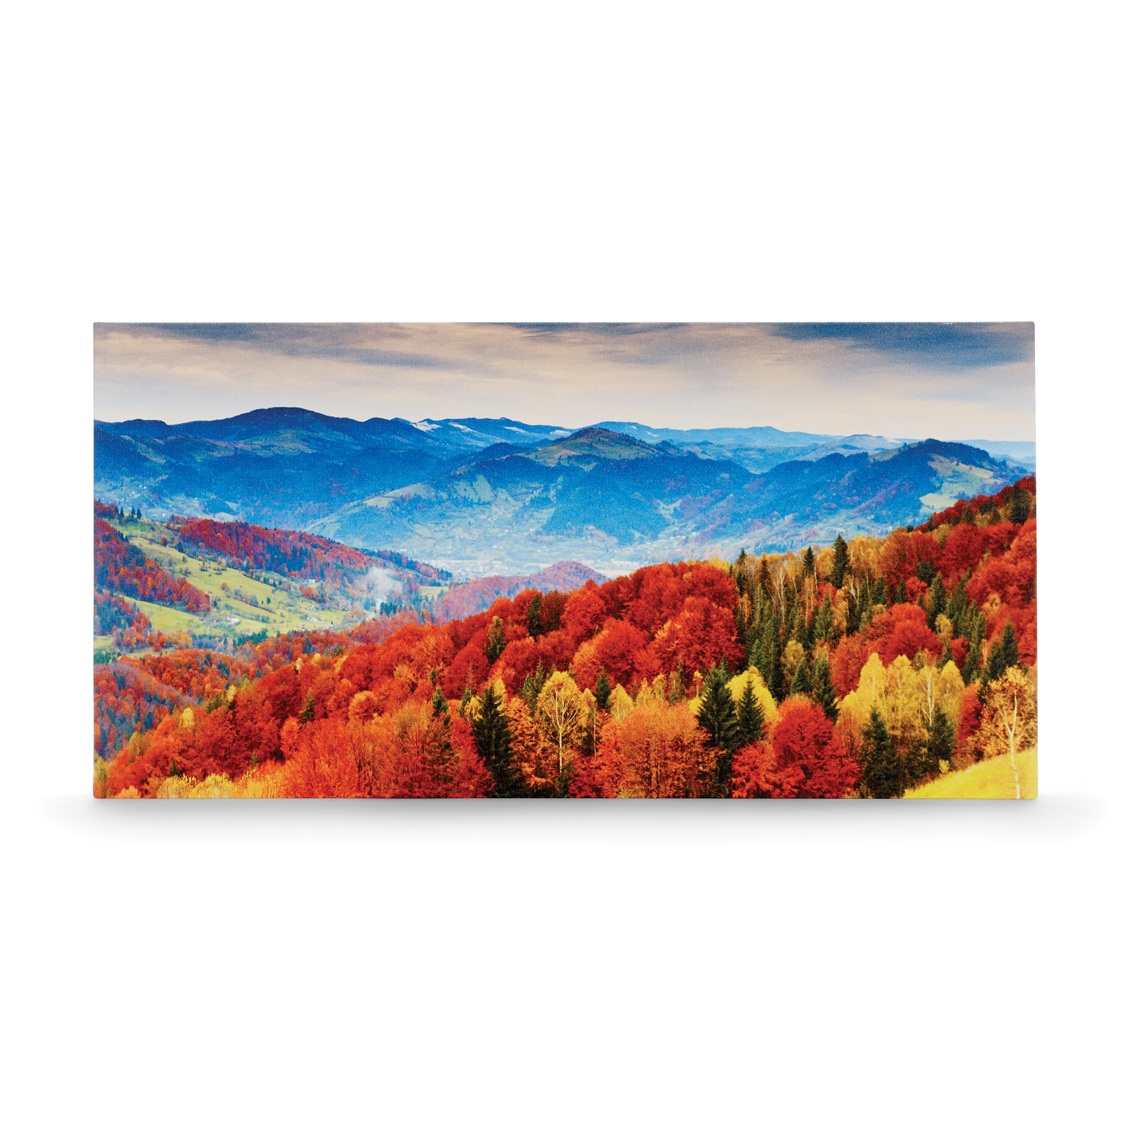 Upscale Framed Panoramic Canvas Prints Framed Panoramic Canvas Black Panoramic Canvas Wall How To Print Passport Size Photos At Cvs How To Print Photos At Cvs From Ipad photos How To Print Photos At Cvs